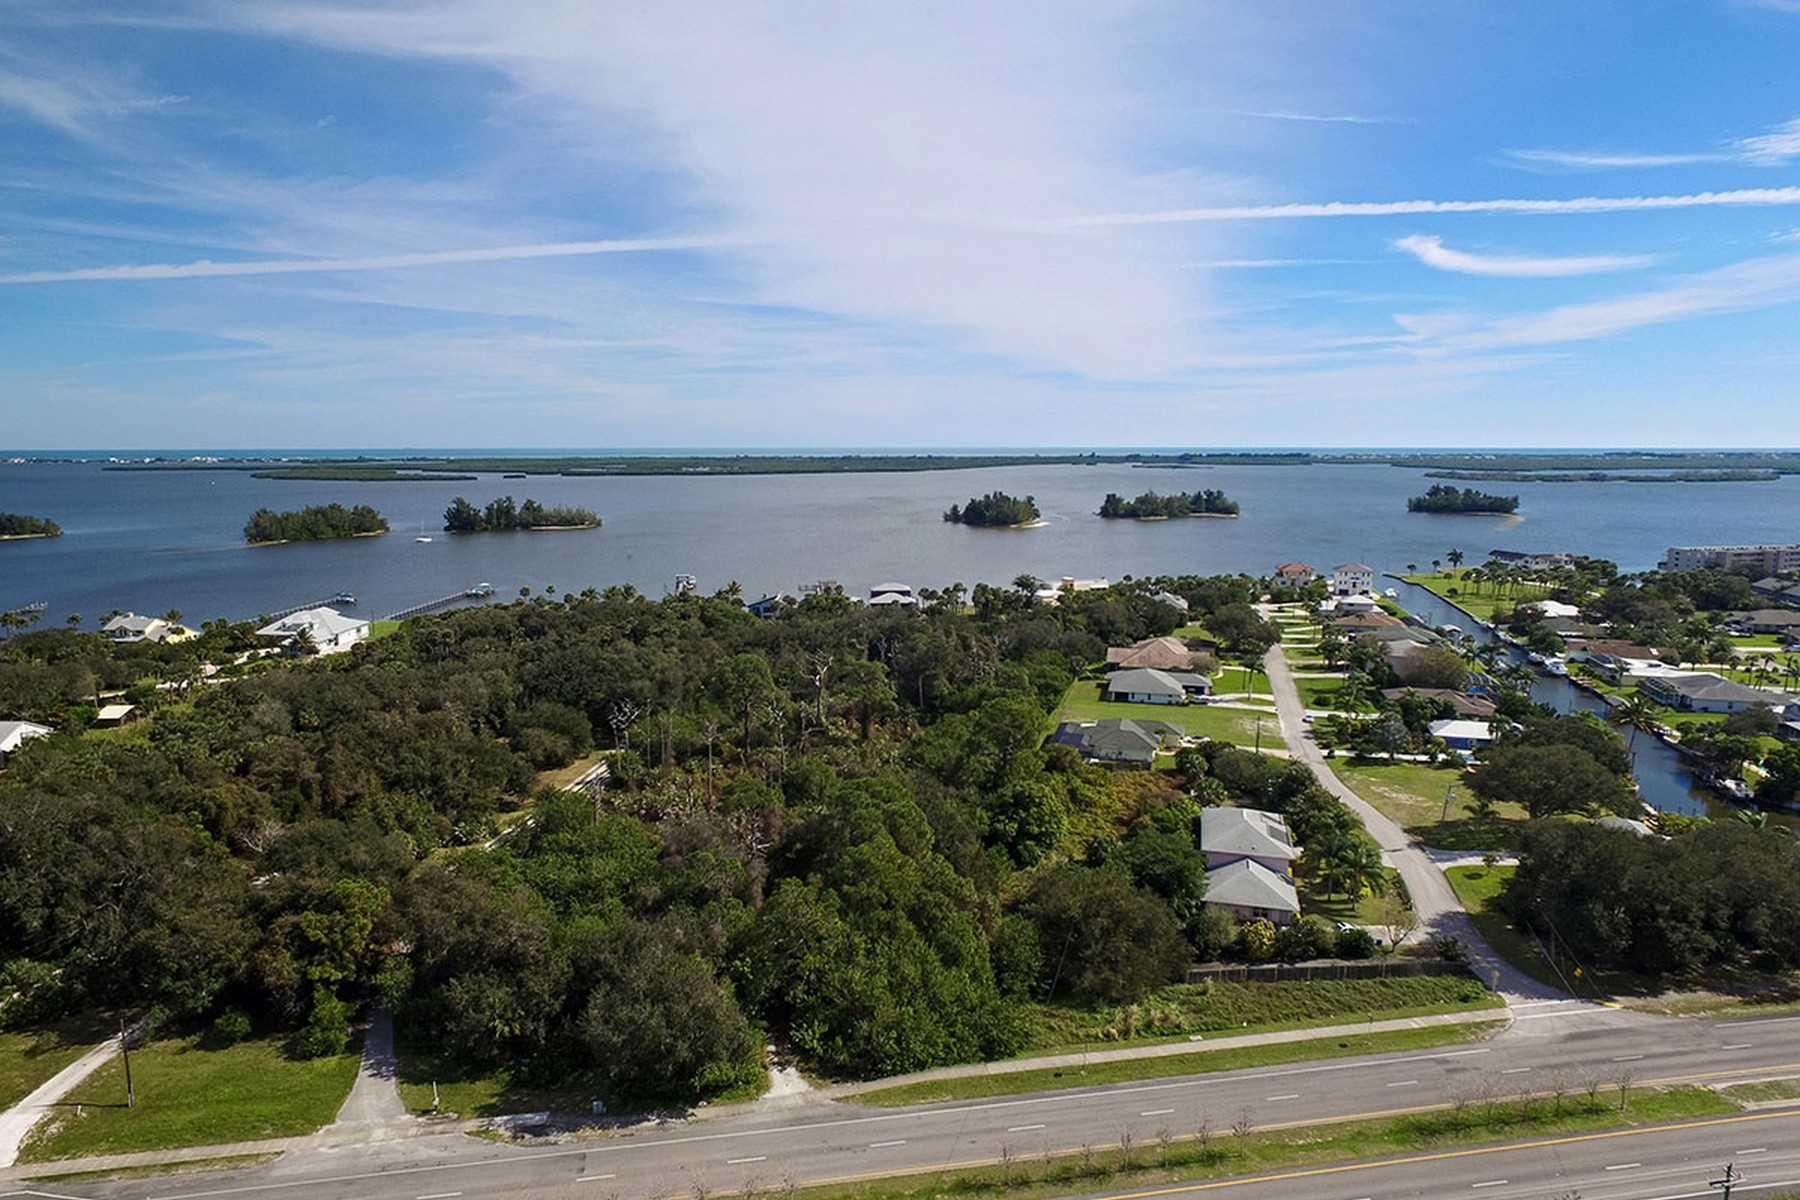 Land for Sale at Triplex Development Opportunity in Sebastian 11100 US Highway 1 Sebastian, Florida 32958 United States